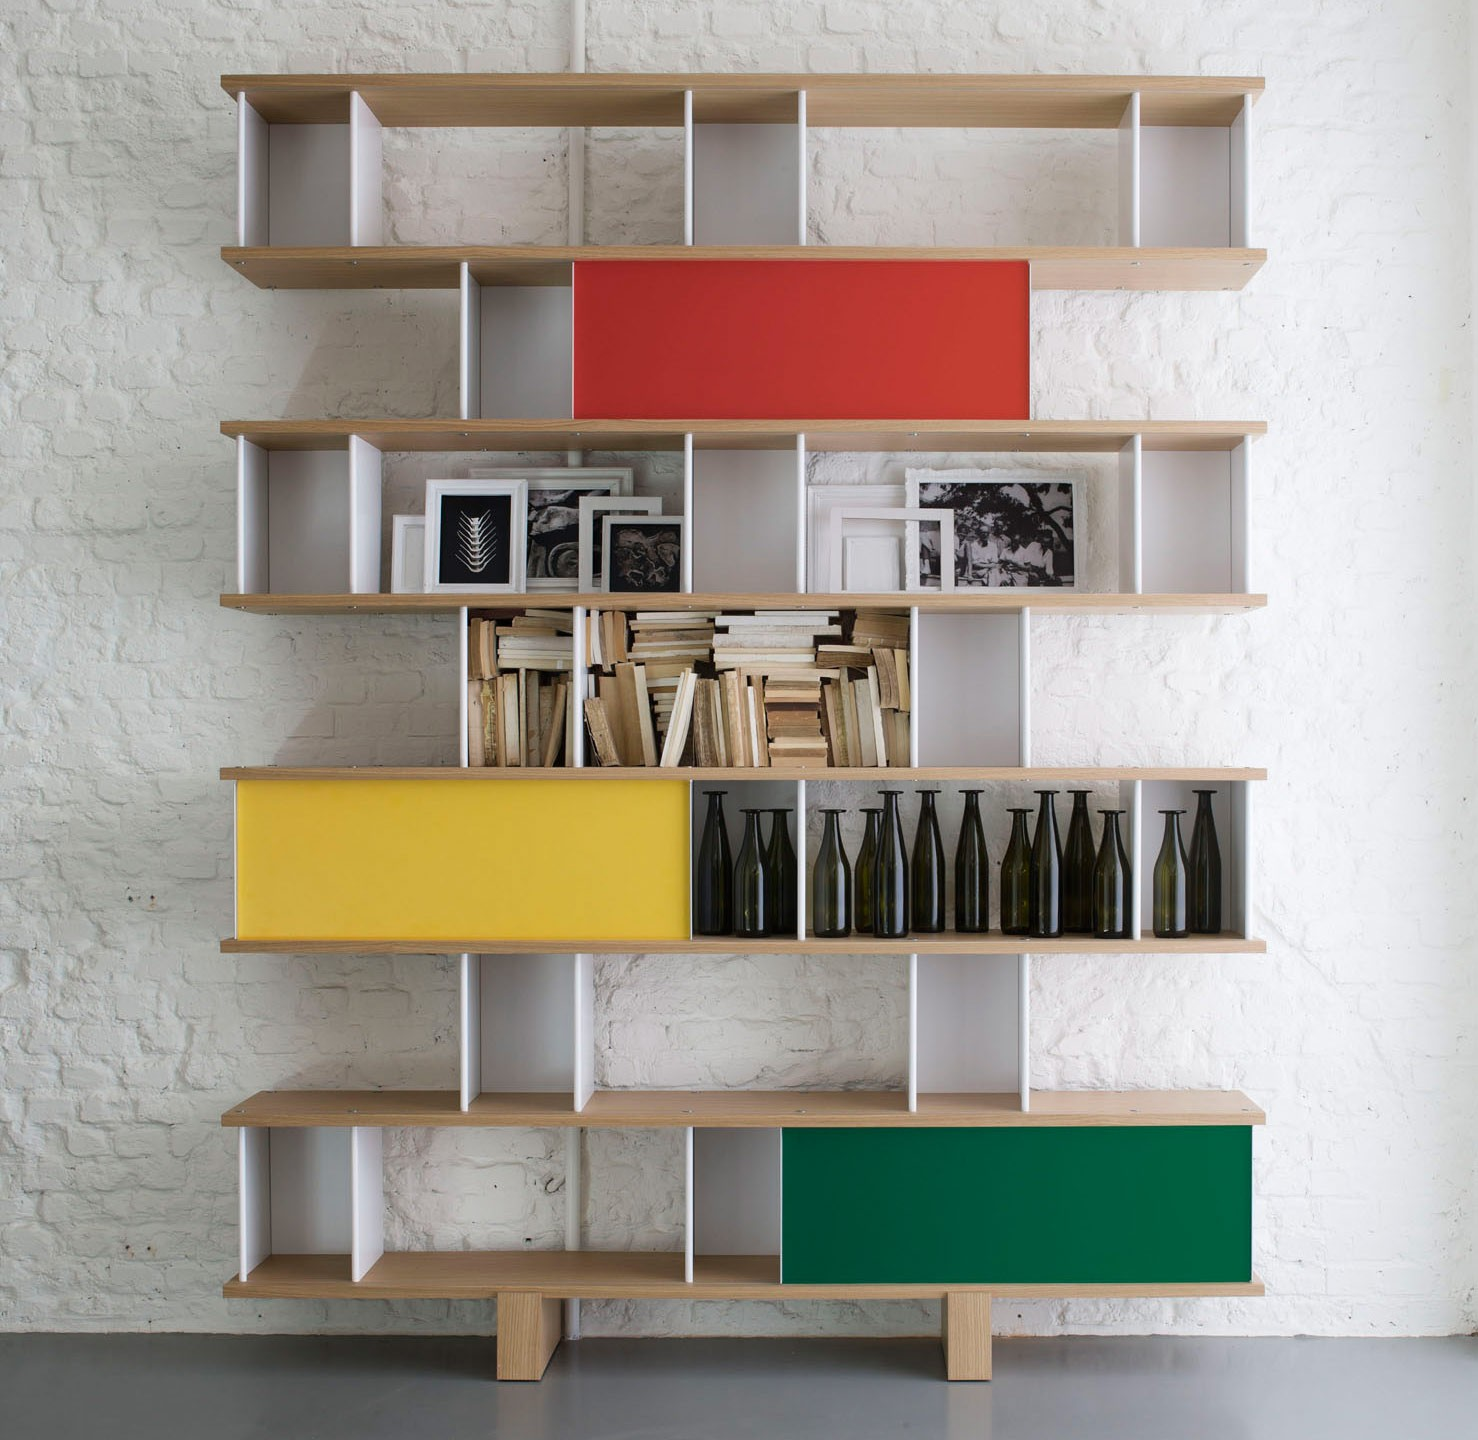 L Objet Du D Sir Une Biblioth Que Fa On Charlotte Perriand # Construire Une Bibliotheque